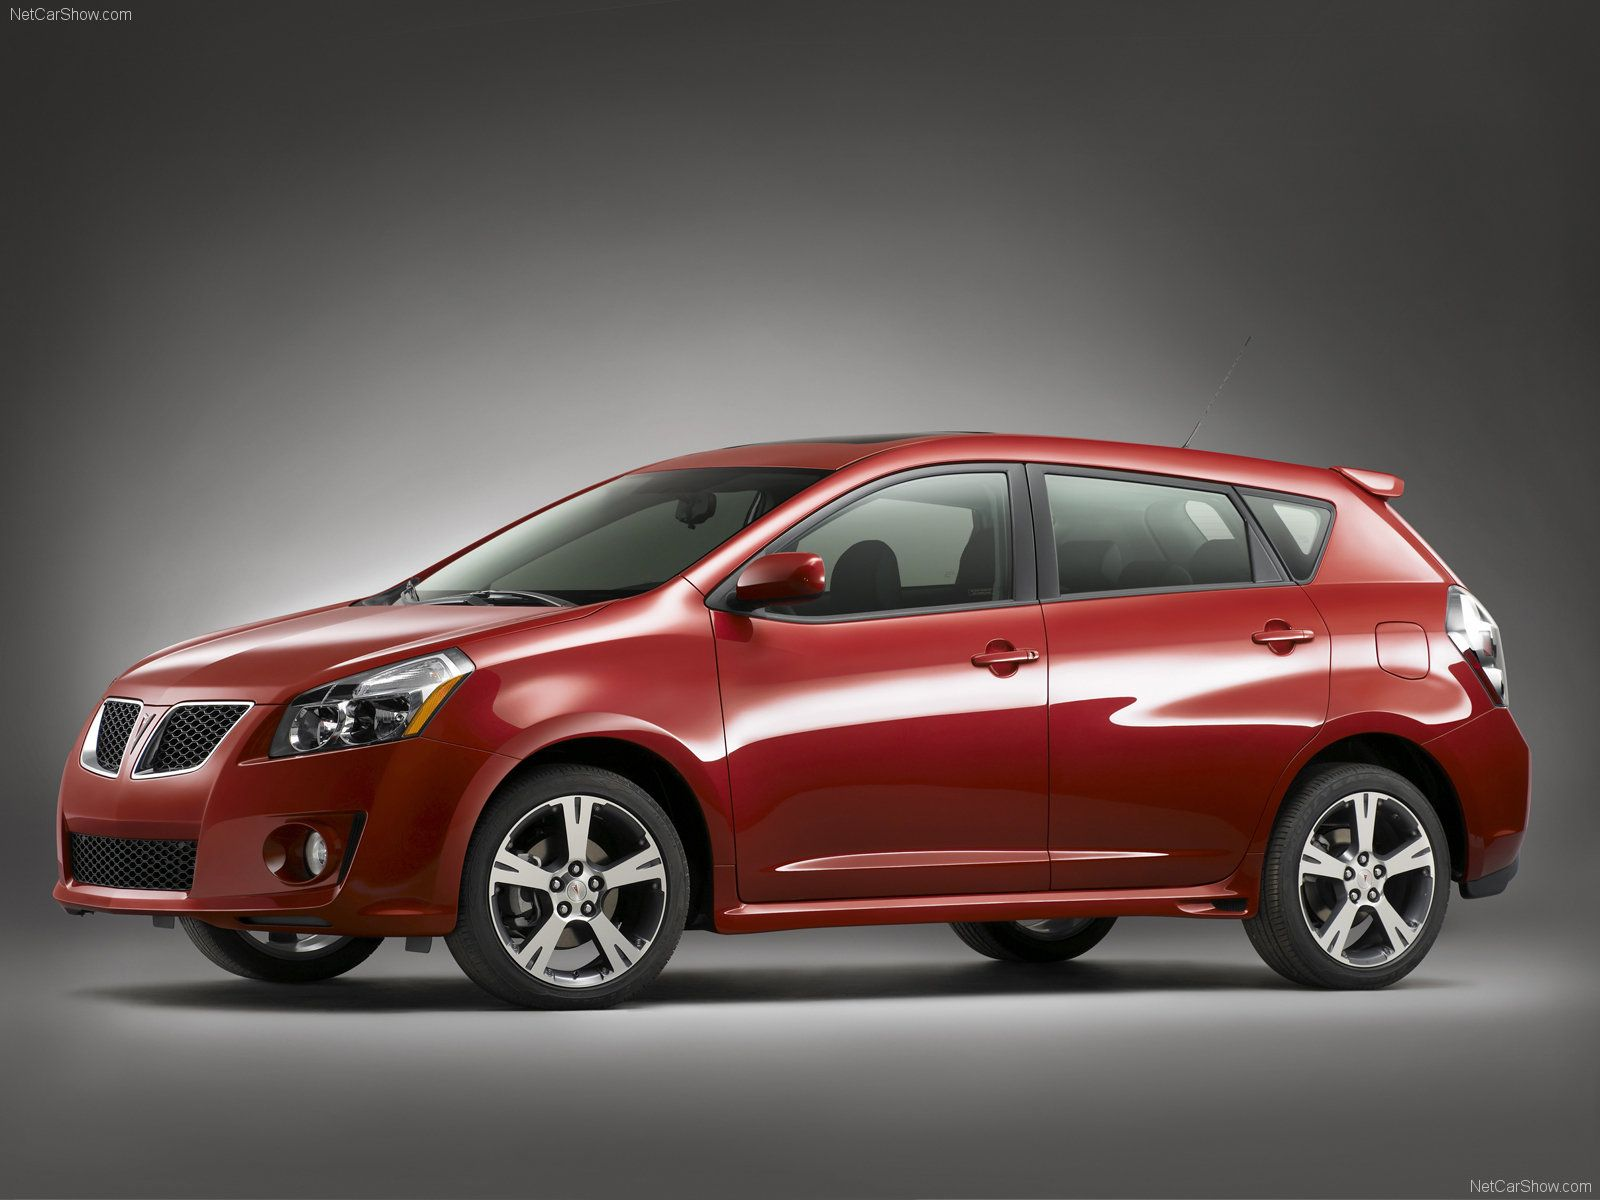 Images of pontiac vibe gt free pictures of pontiac vibe gt for your desktop hd wallpaper for backgrounds pontiac vibe gt car tuning pontiac vibe gt and